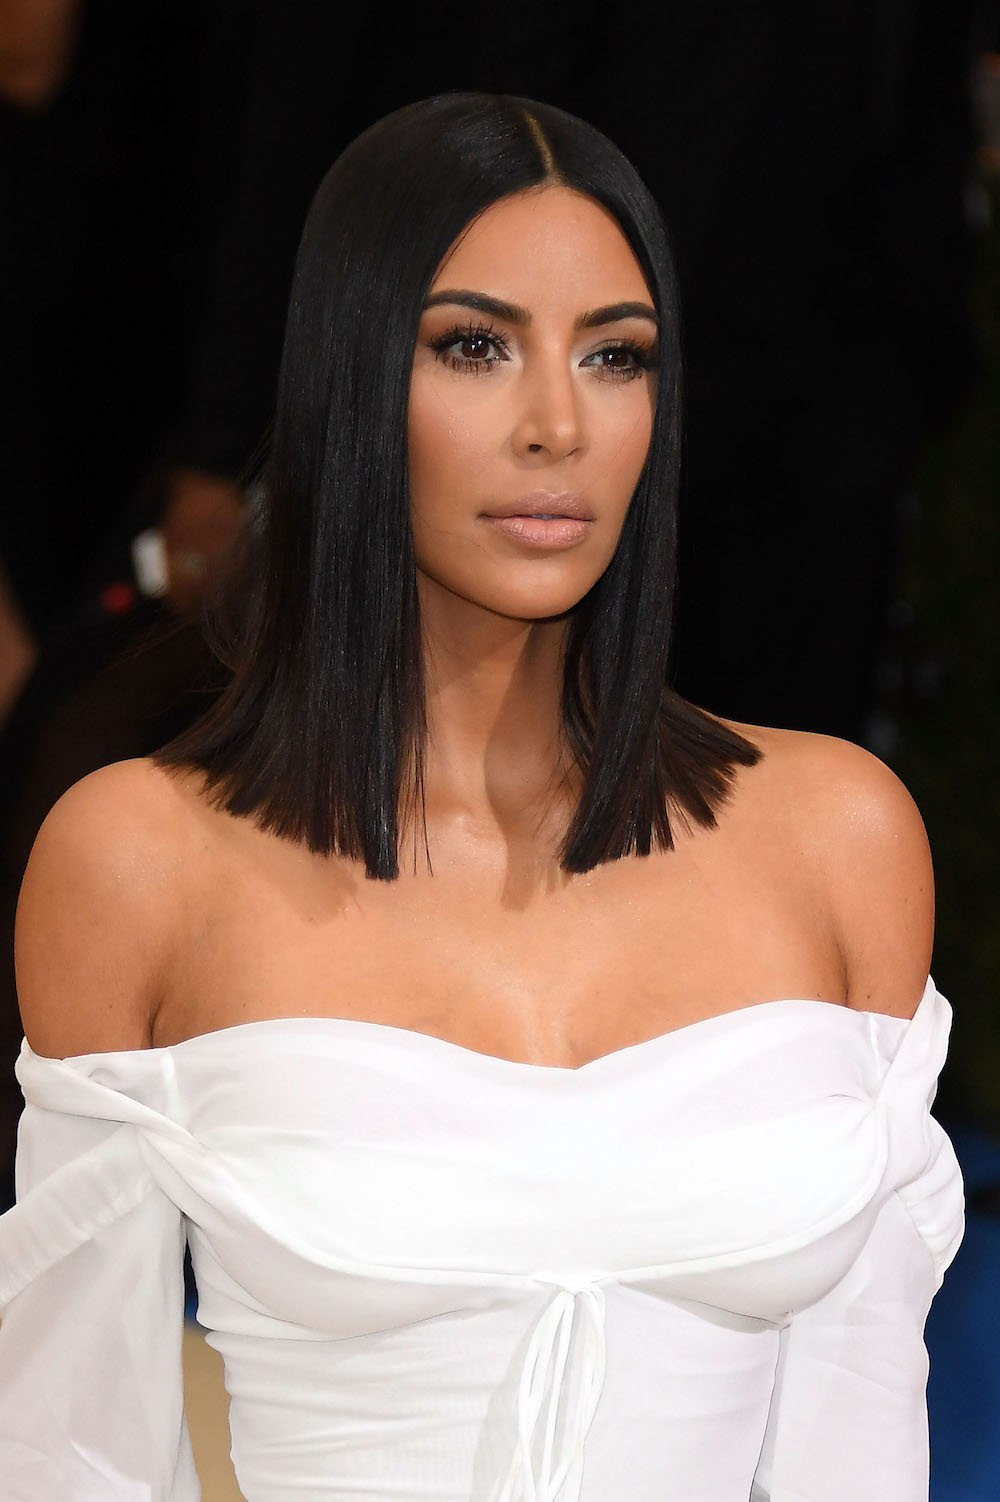 NEW YORK, NY - MAY 01:  Kim Kardashian attends the Rei Kawakubo/Comme des Garcons: Art Of The In-Between Costume Institute Gala at Metropolitan Museum of Art on May 1, 2017 in New York City.  (Photo by Venturelli/WireImage)